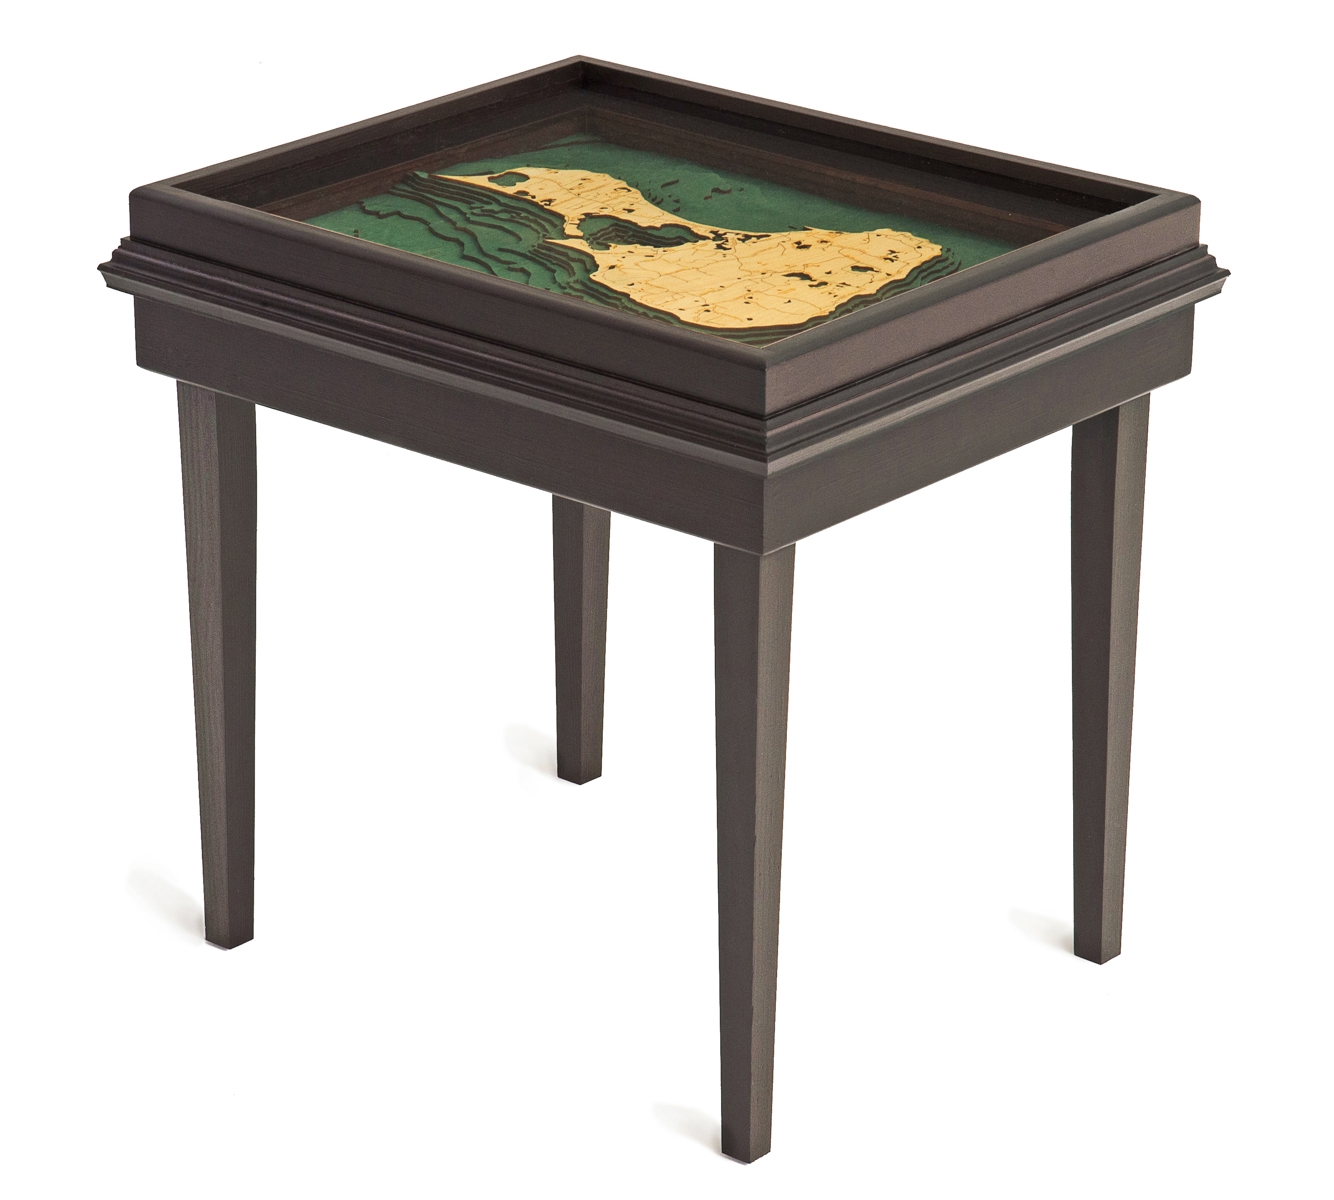 custom wood charts block island end table from carved lake art bli view larger very small accent black coffee with top bedroom lighting ideas cloth cover craft plans cheese tray